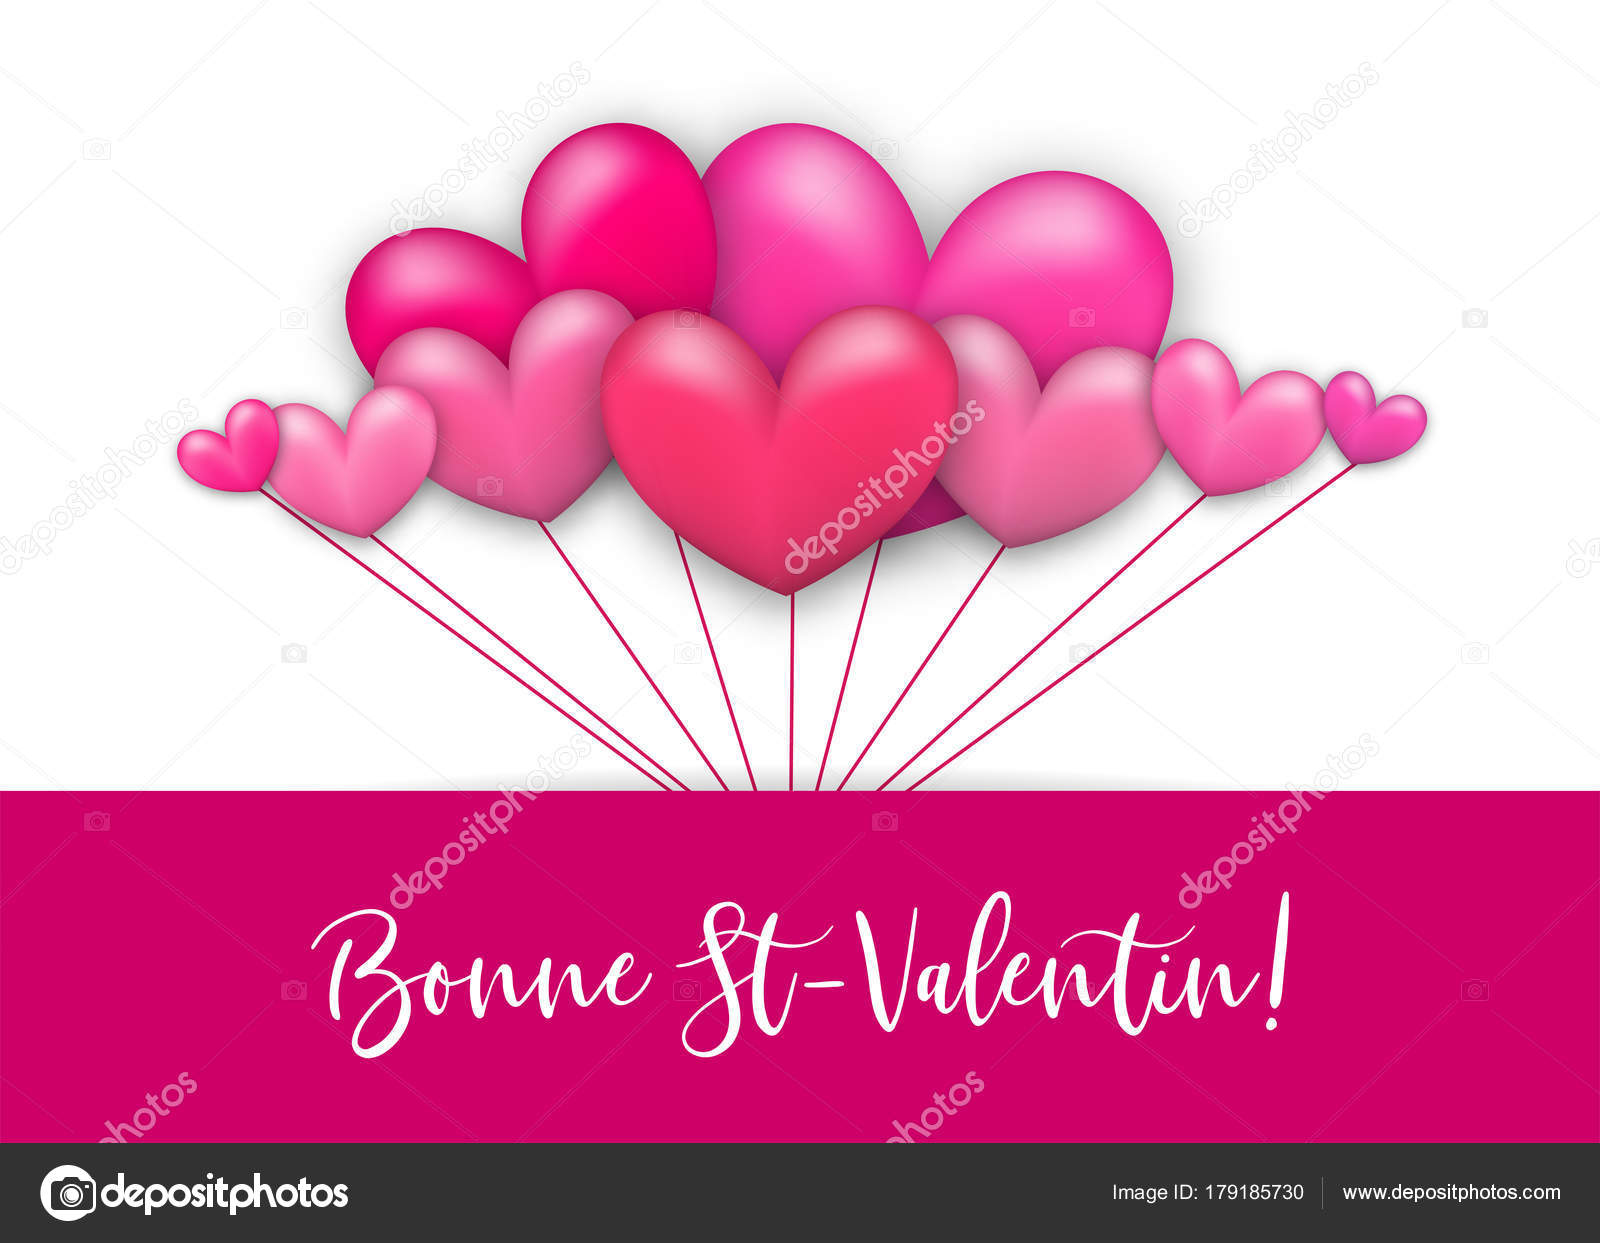 Happy valentines day heart greeting card stock vector helensh happy valentines day bonne st valentin french language realistic 3d heart romantic isolated white vector illustration background st valentine greeting m4hsunfo Images